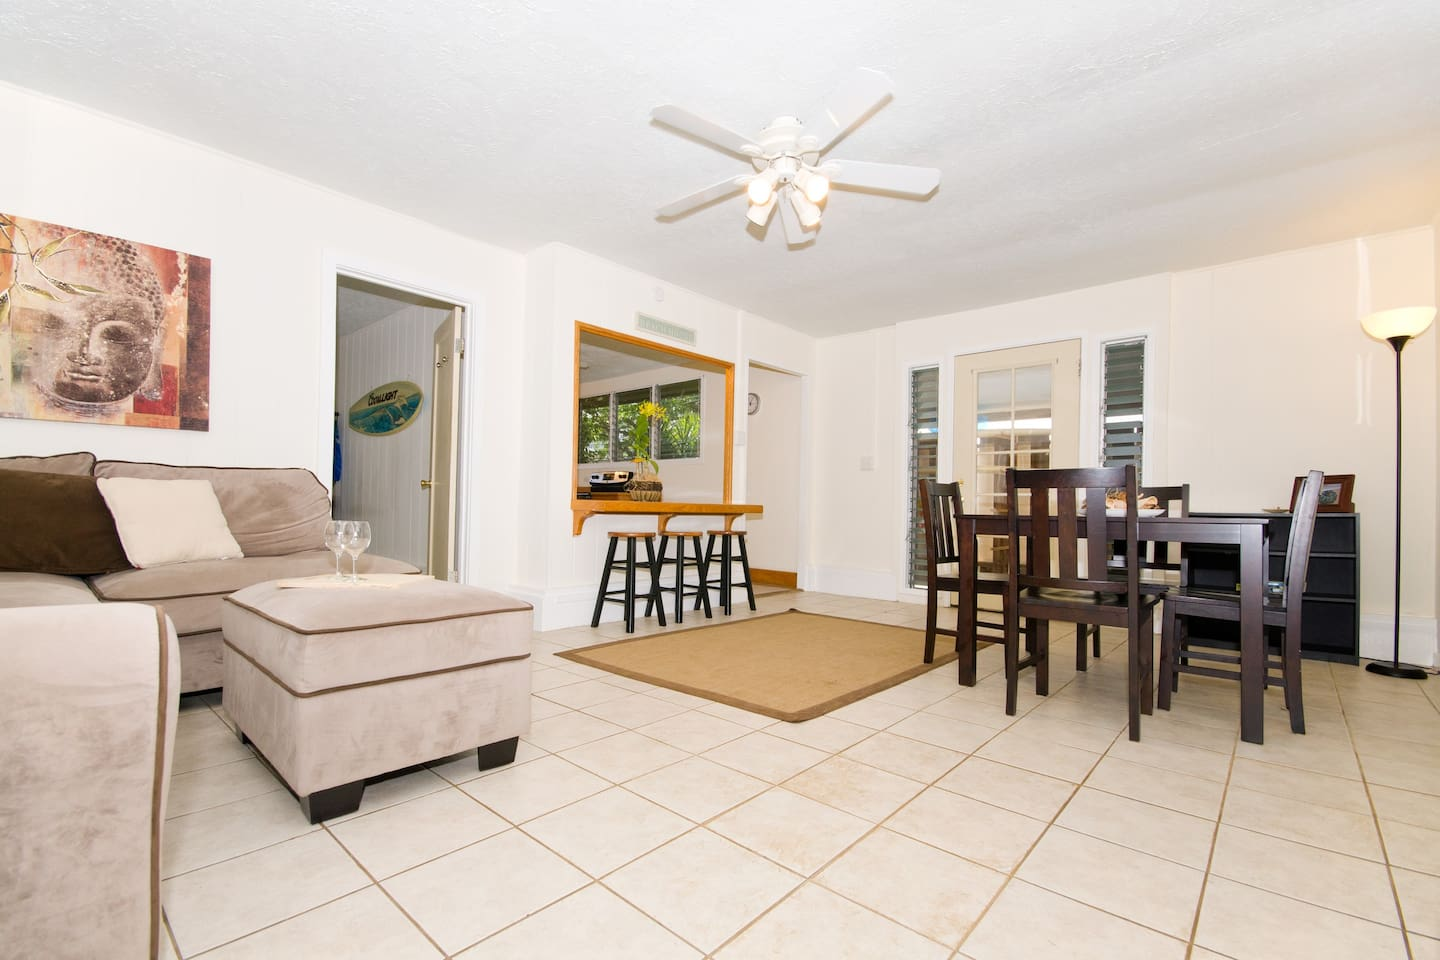 Two Bedroom House near Kailua Beach